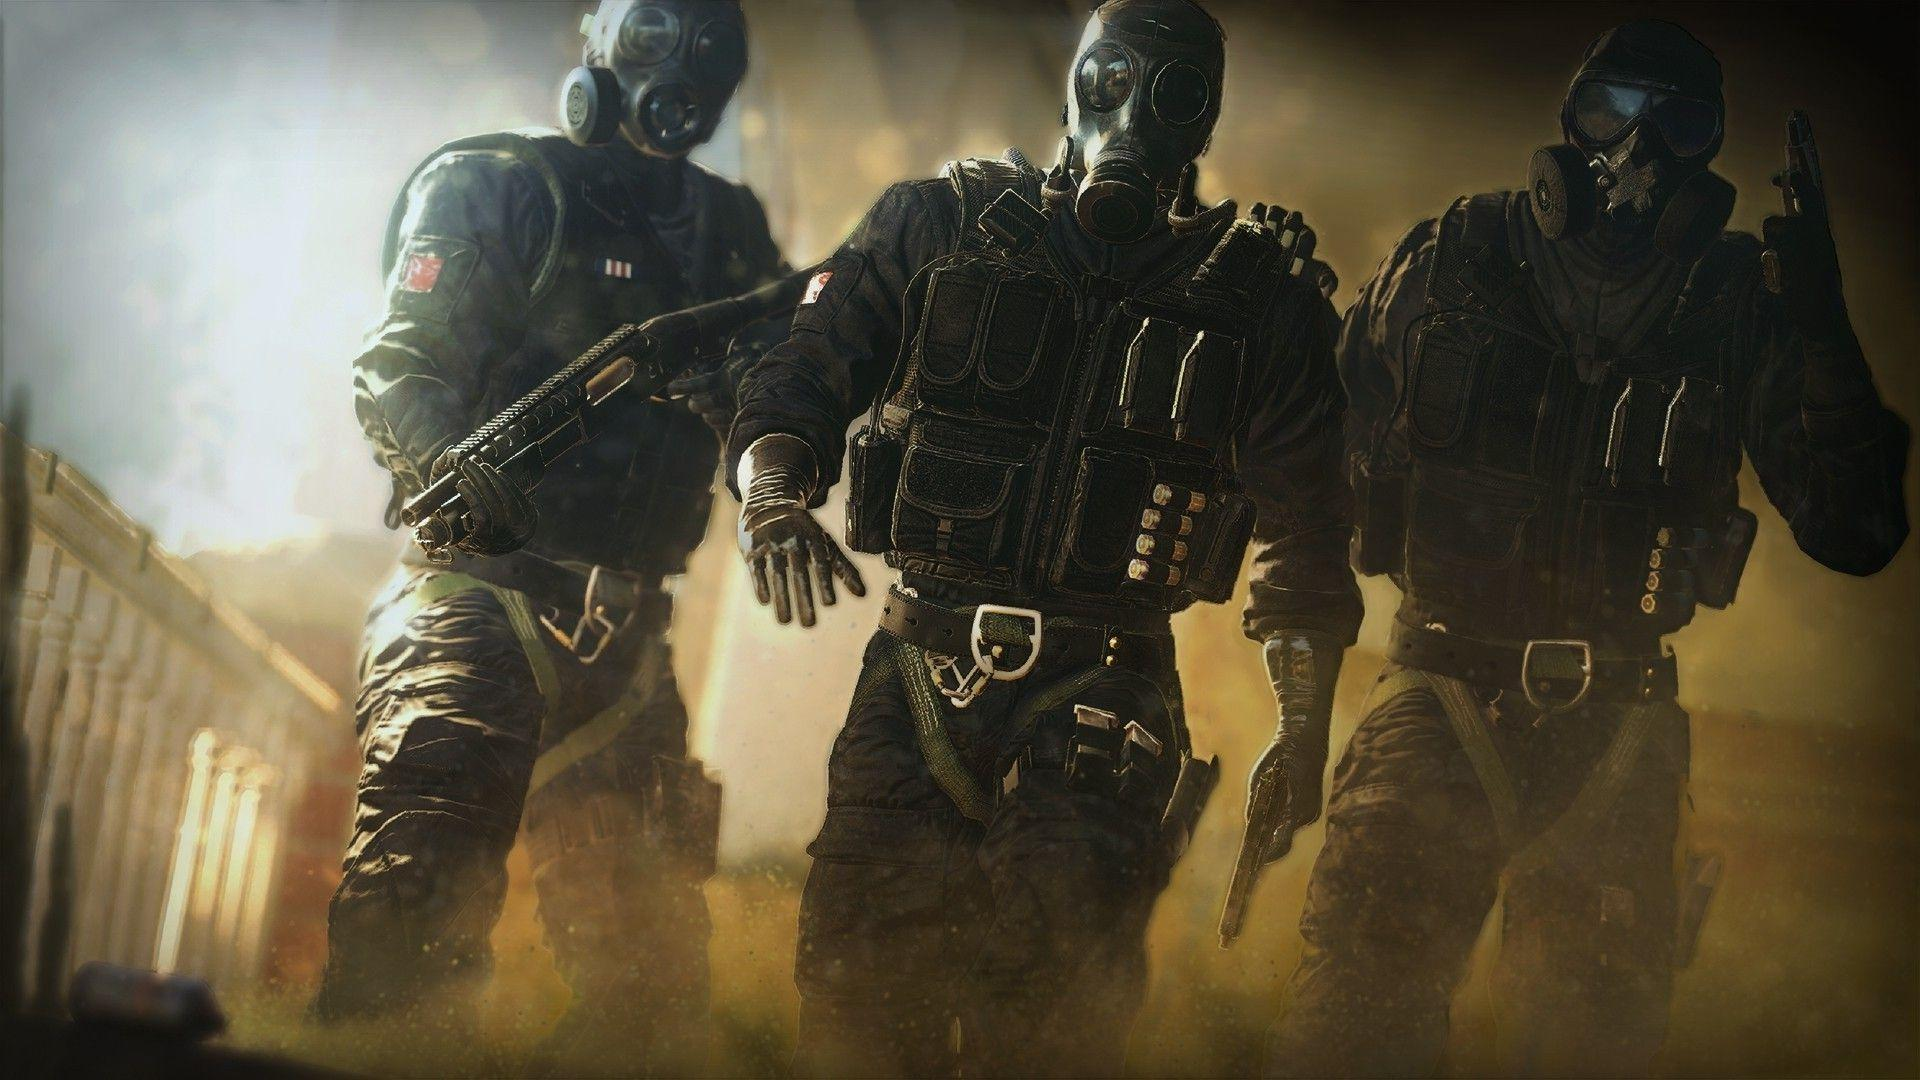 Cool Rainbow Six Siege Wallpaper Pictures To Pin On